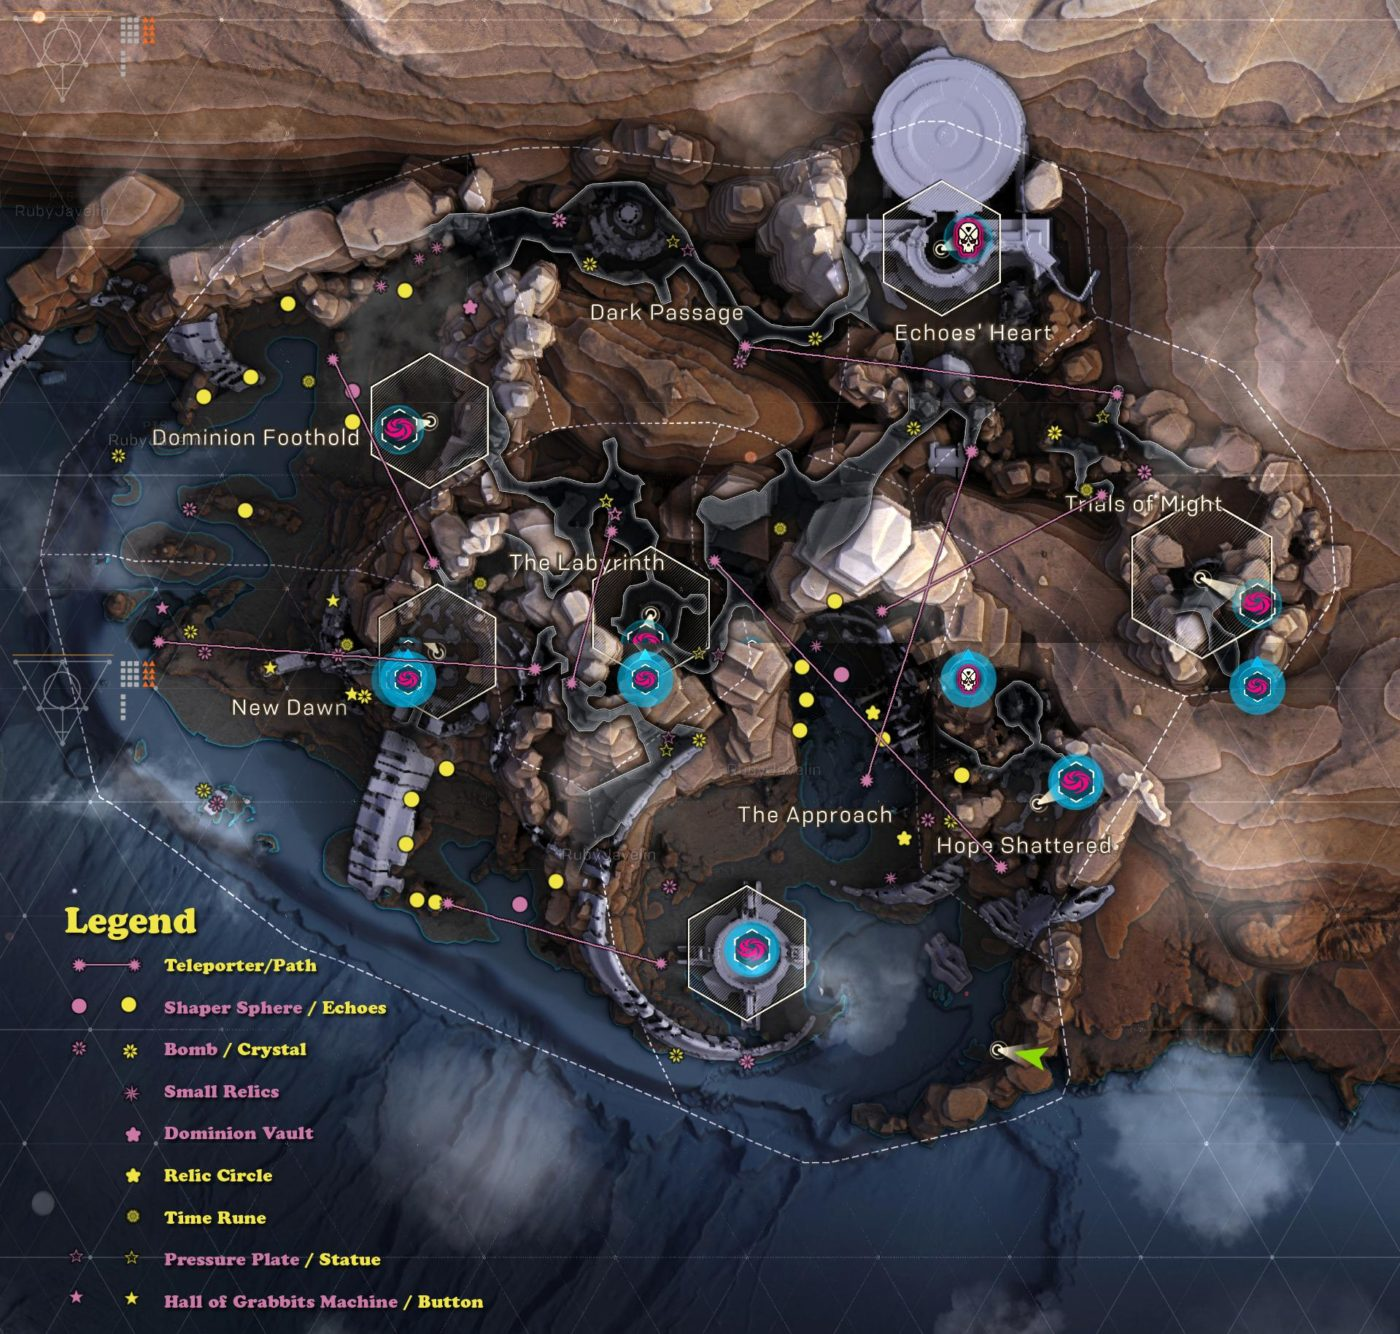 anthem cataclysm map, Anthem Cataclysm Map Revealed (Potential Spoilers), MP1st, MP1st